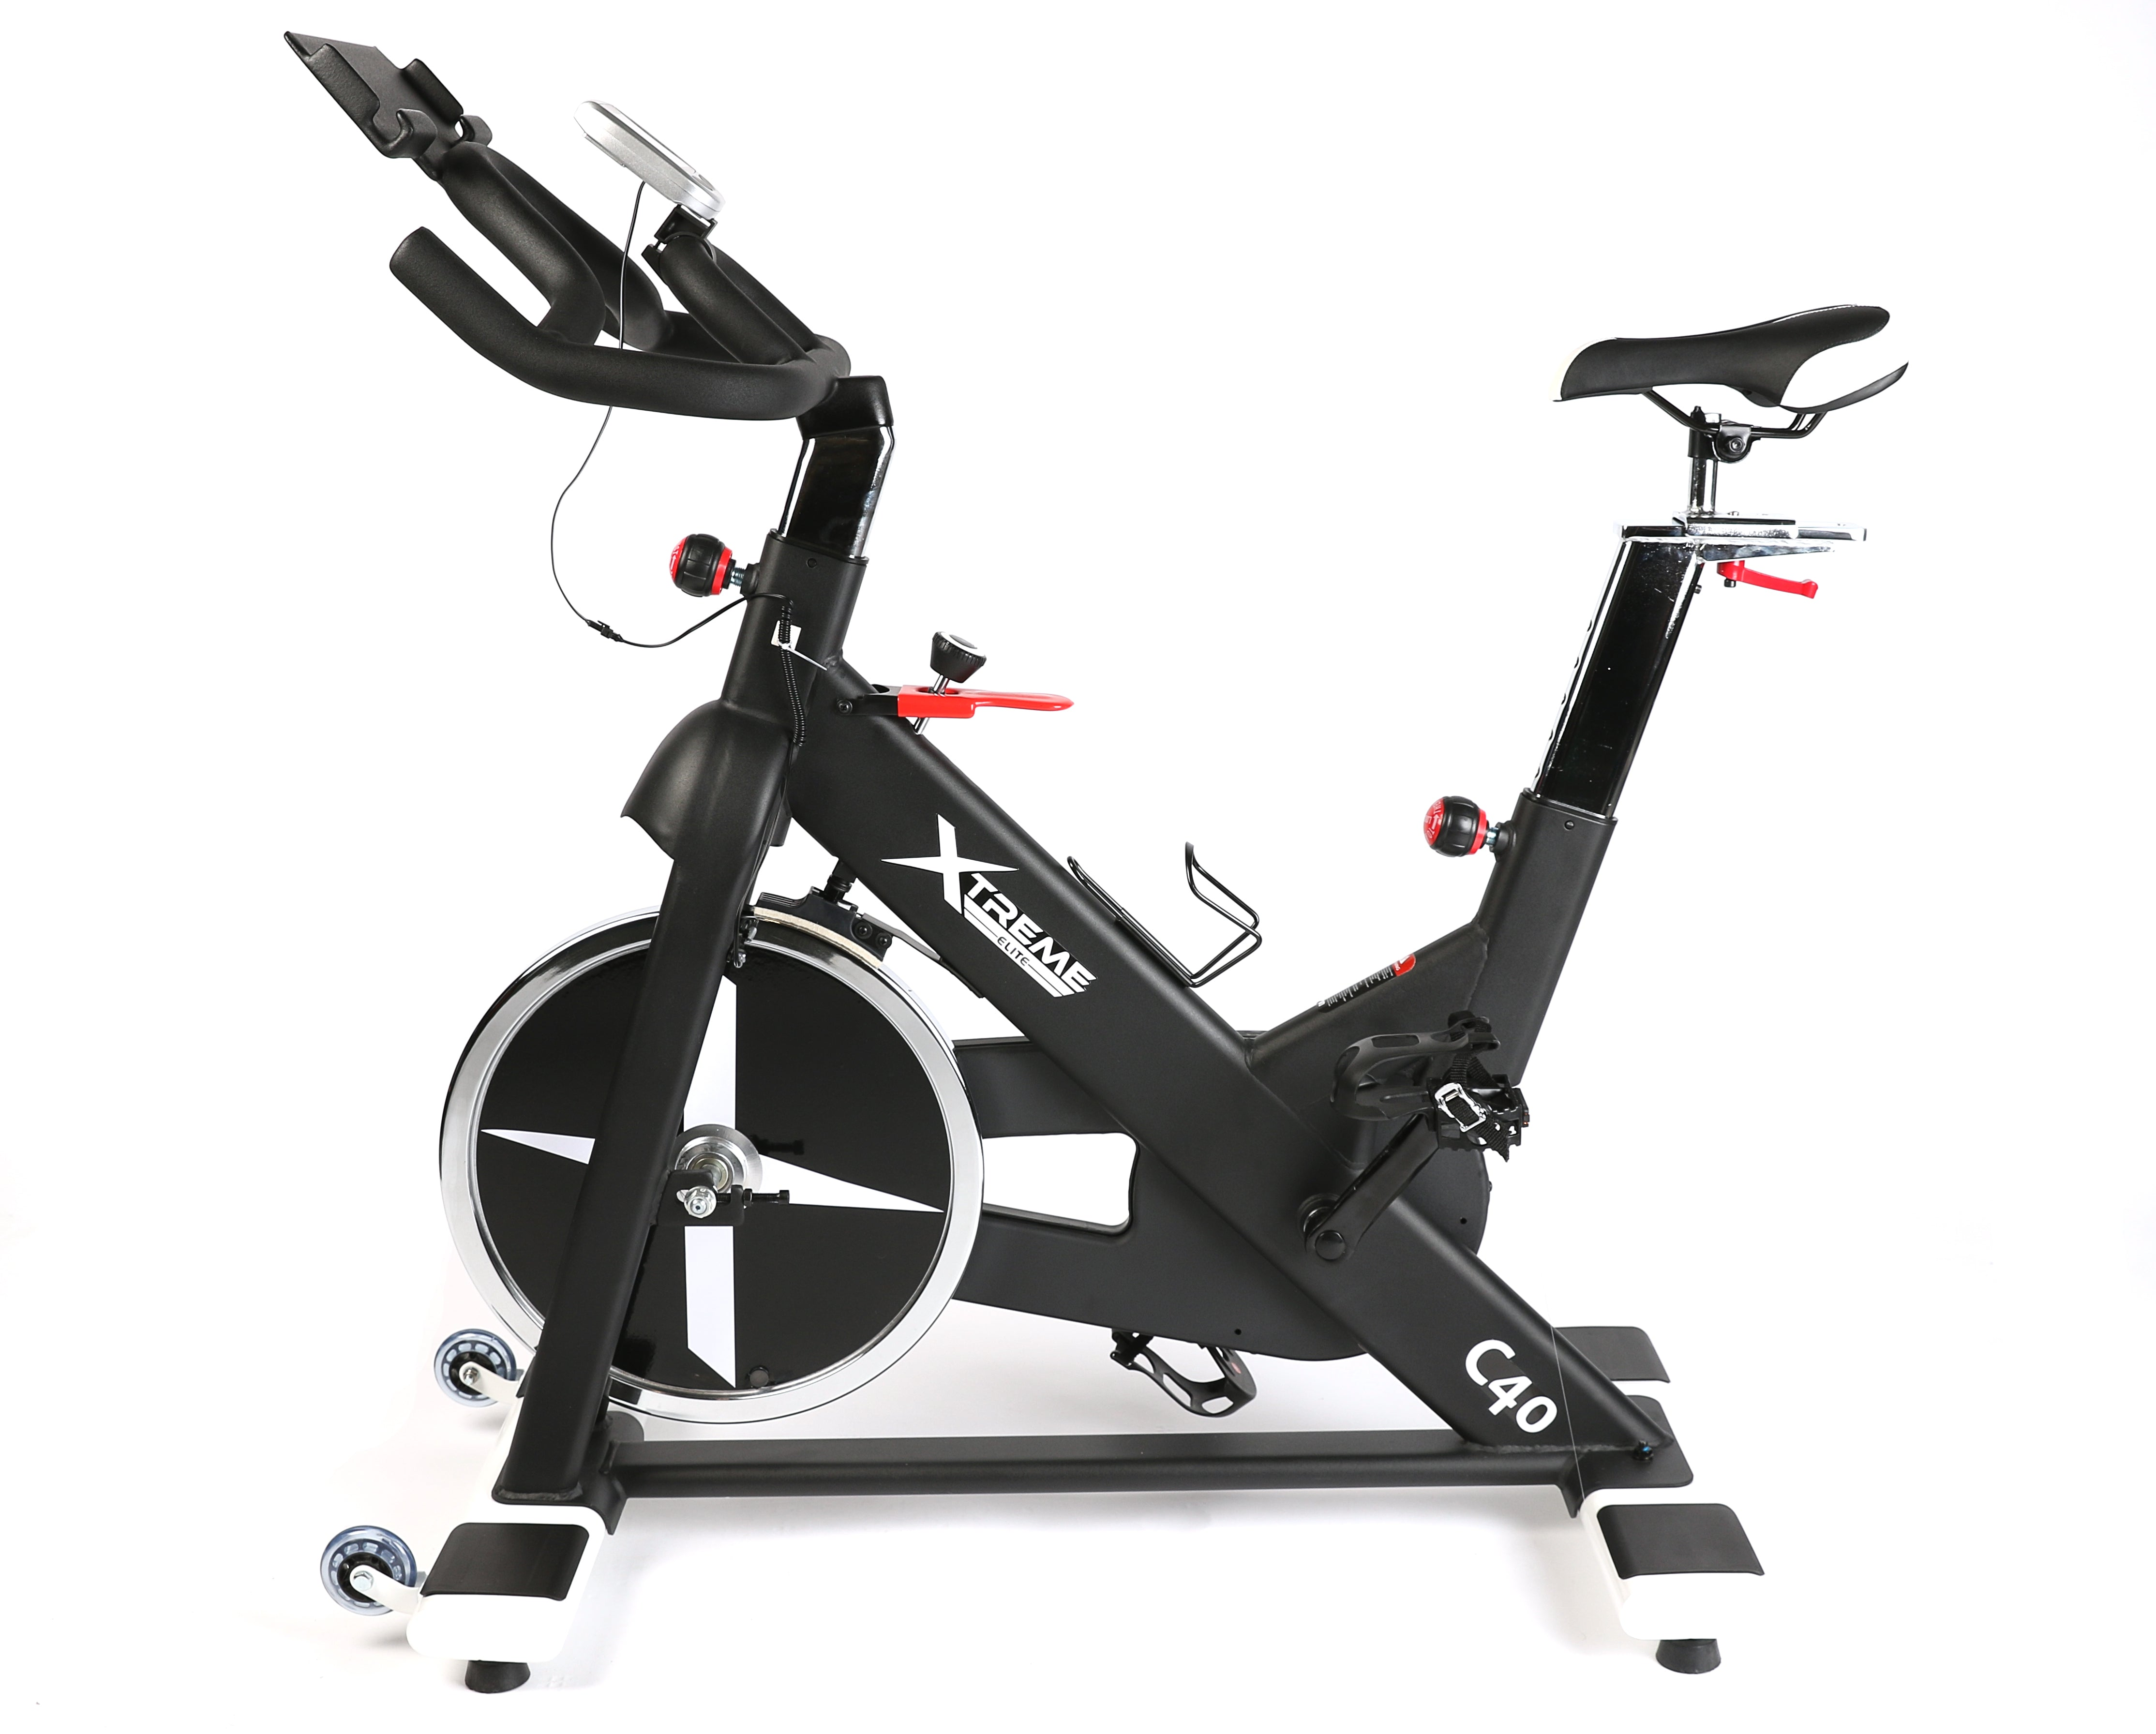 The XEC40 Indoor Cycle Exercise Bike is Perfect for your Home!